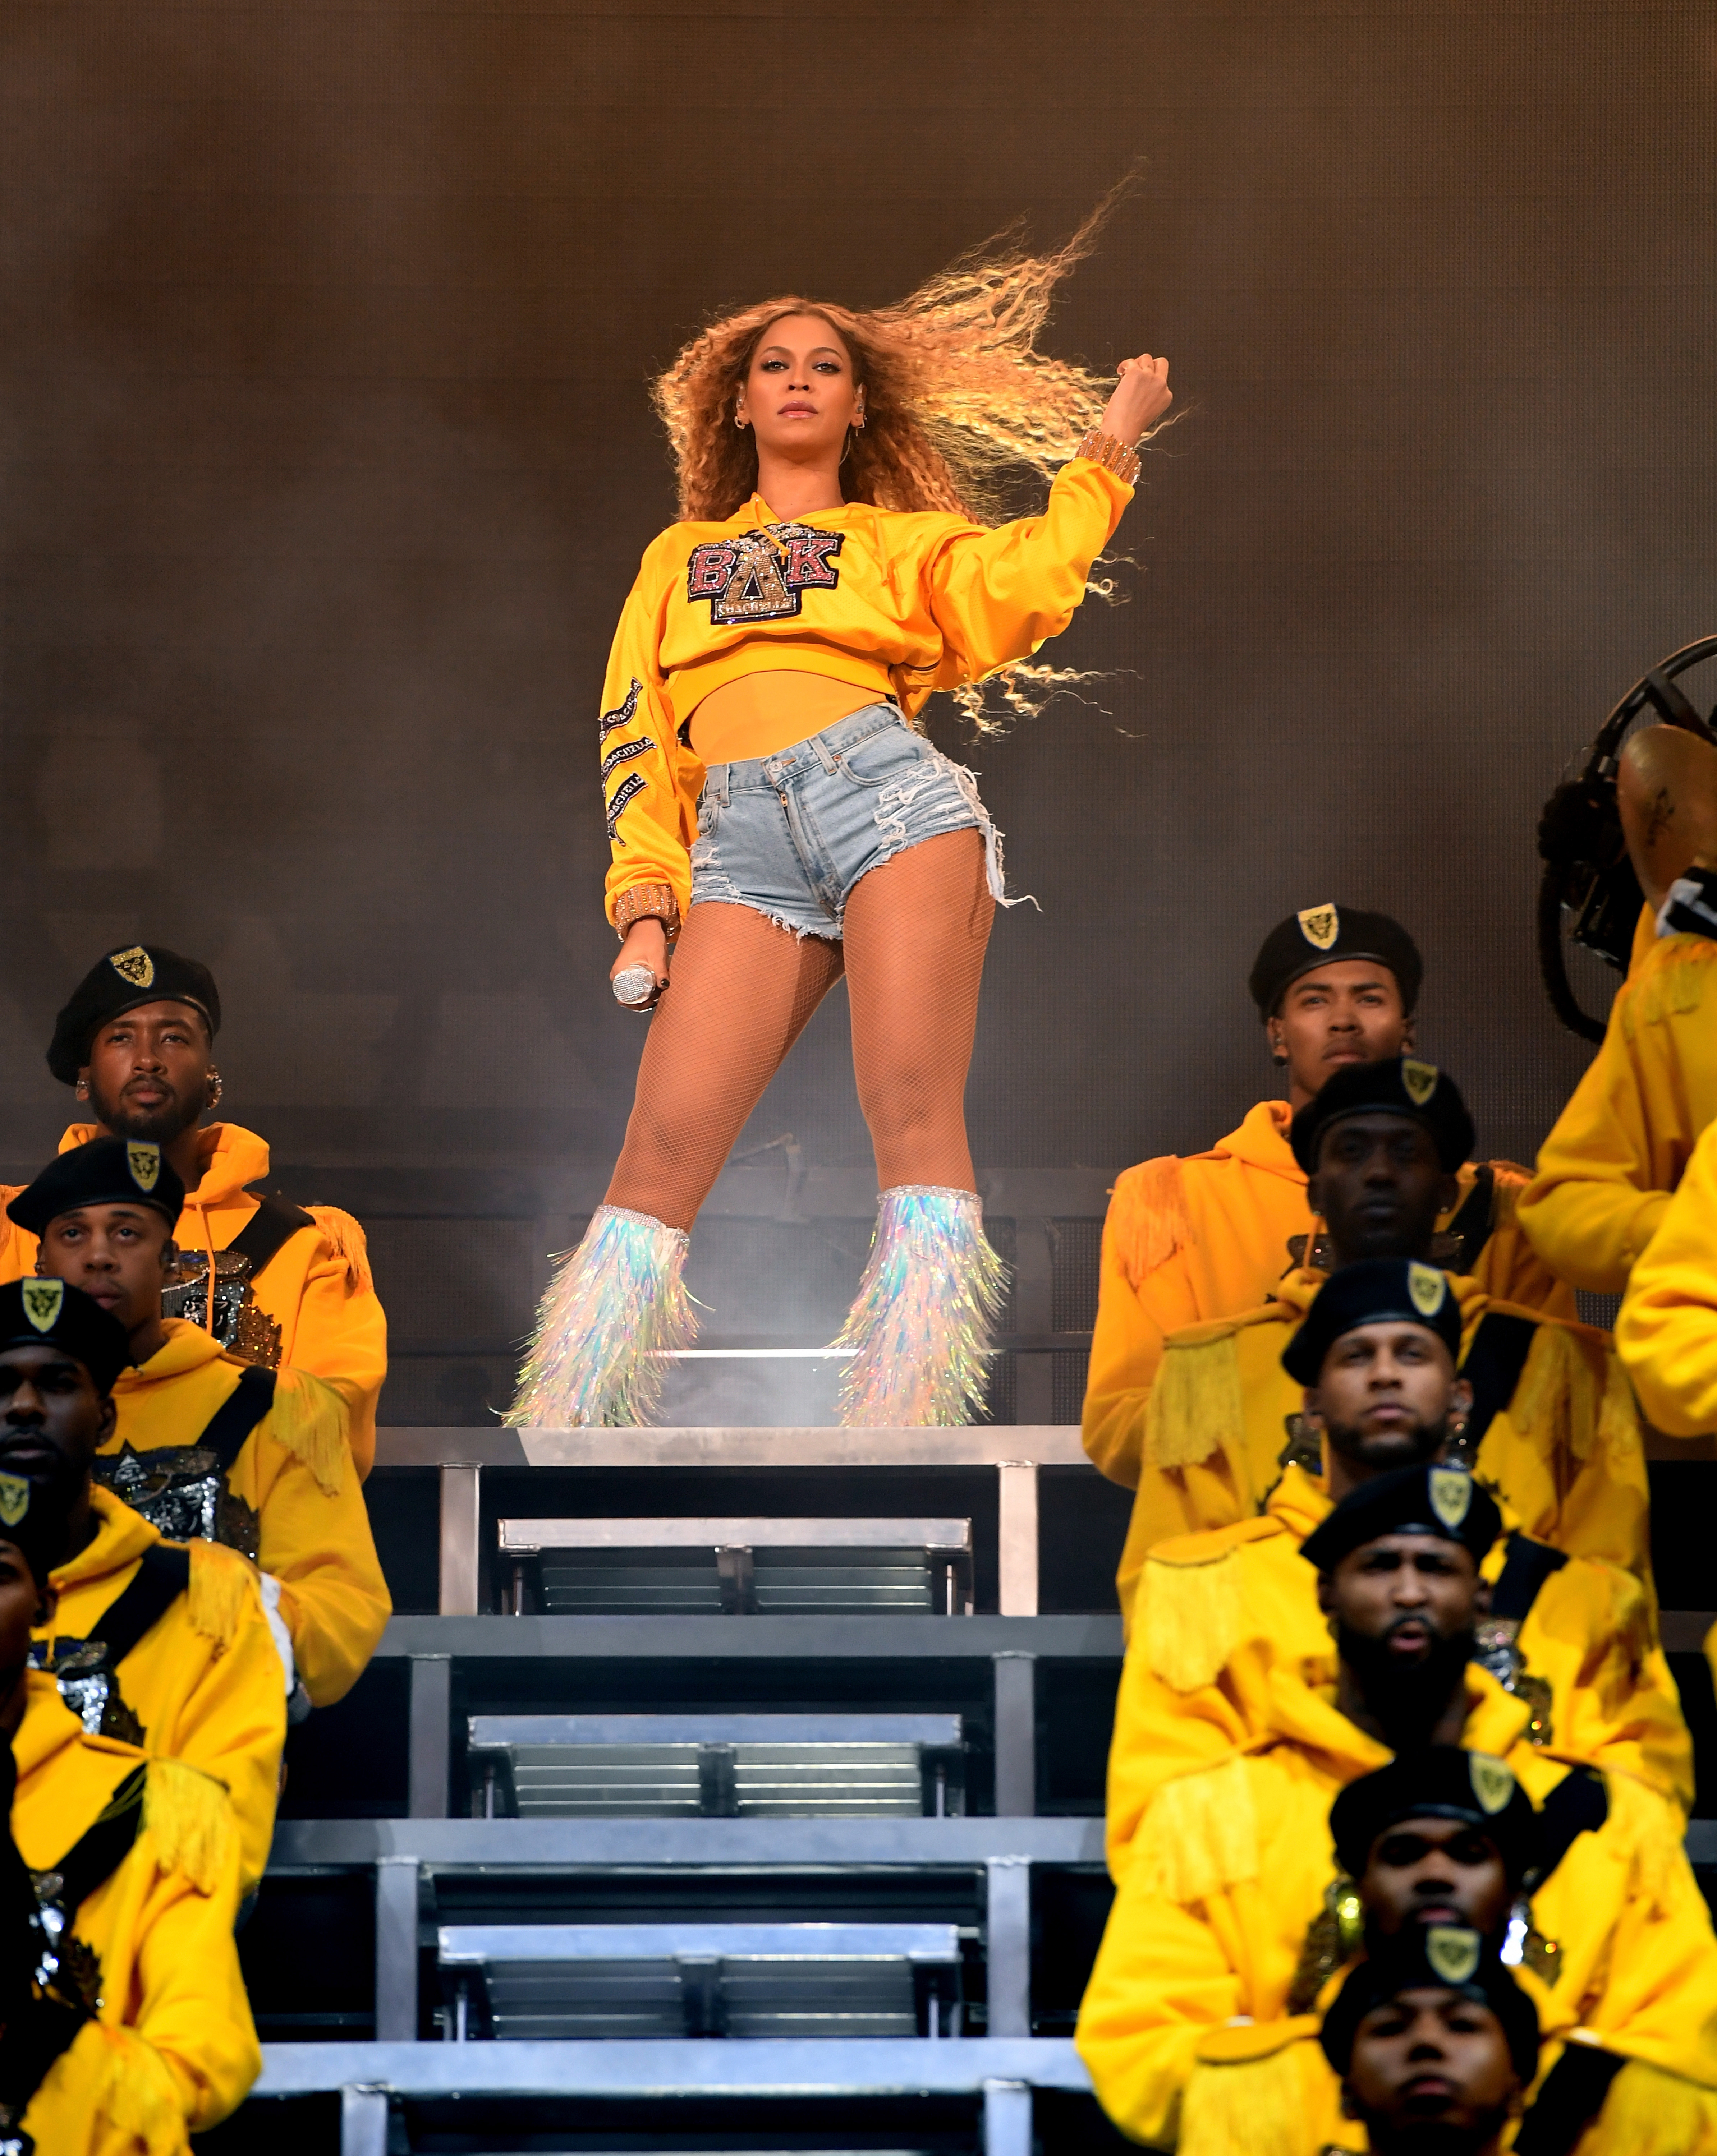 Try to survive being Beyonce's assistant in this viral Twitter adventure